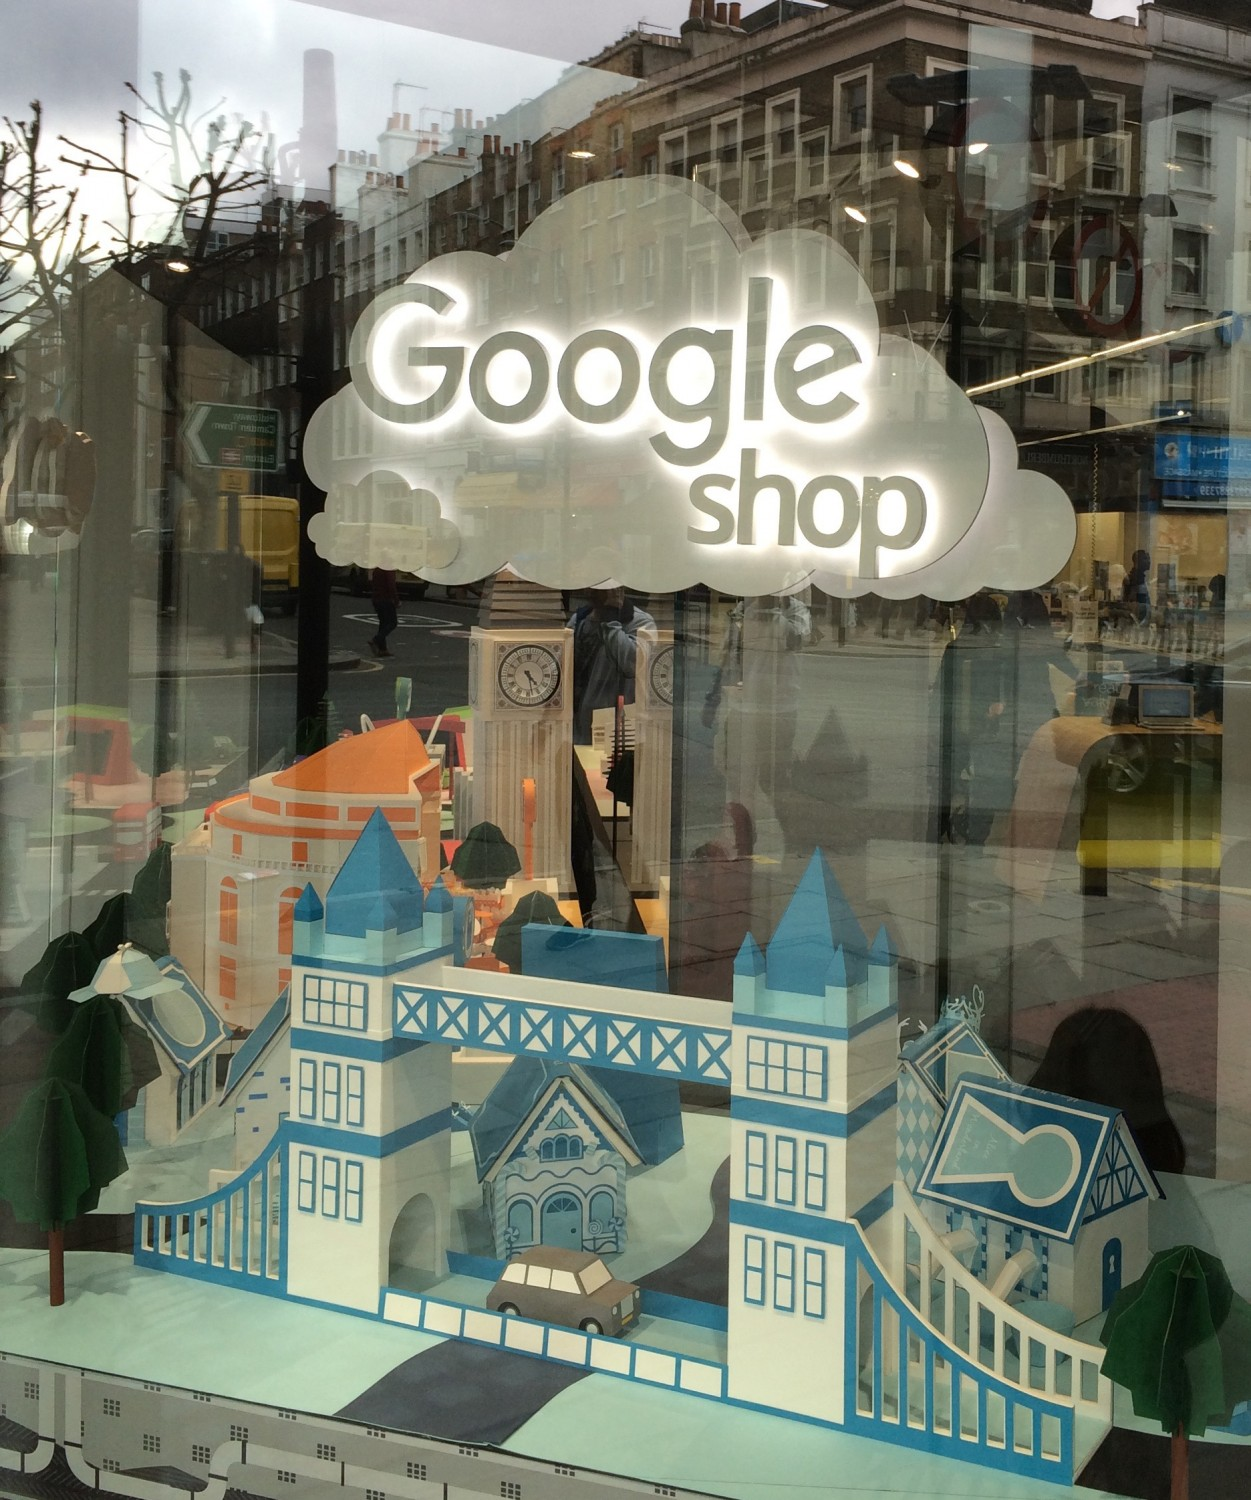 Google Illuminated Window Display